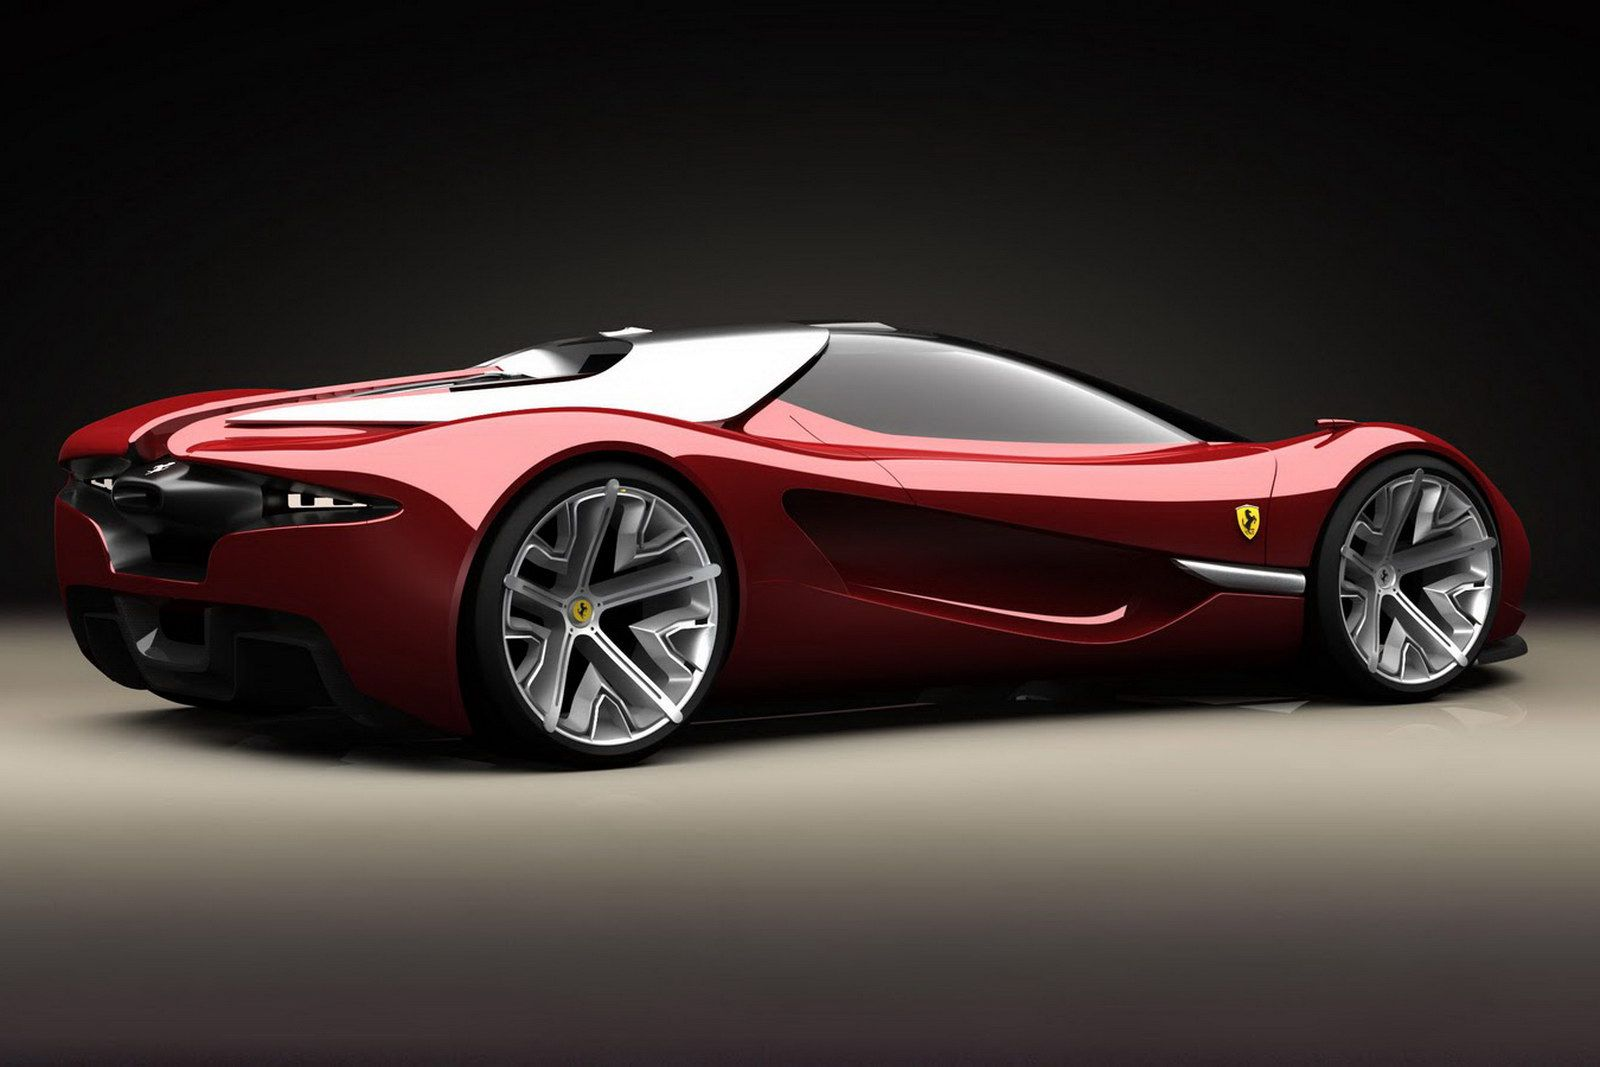 Ferrari Concept Car Concept Cars Supercars Concept Ferrari World